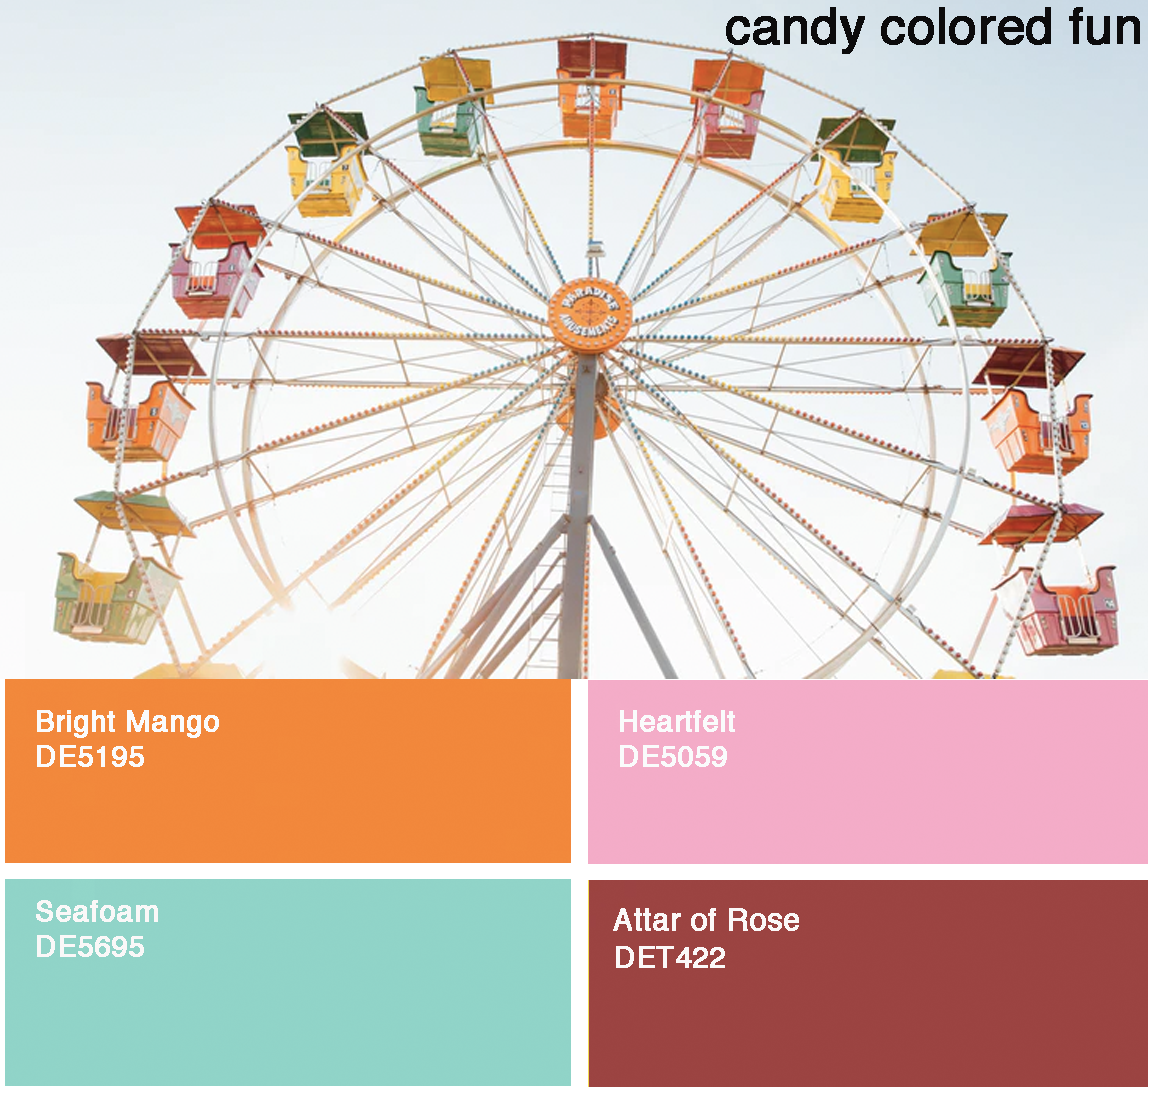 candy_colors_rev.png